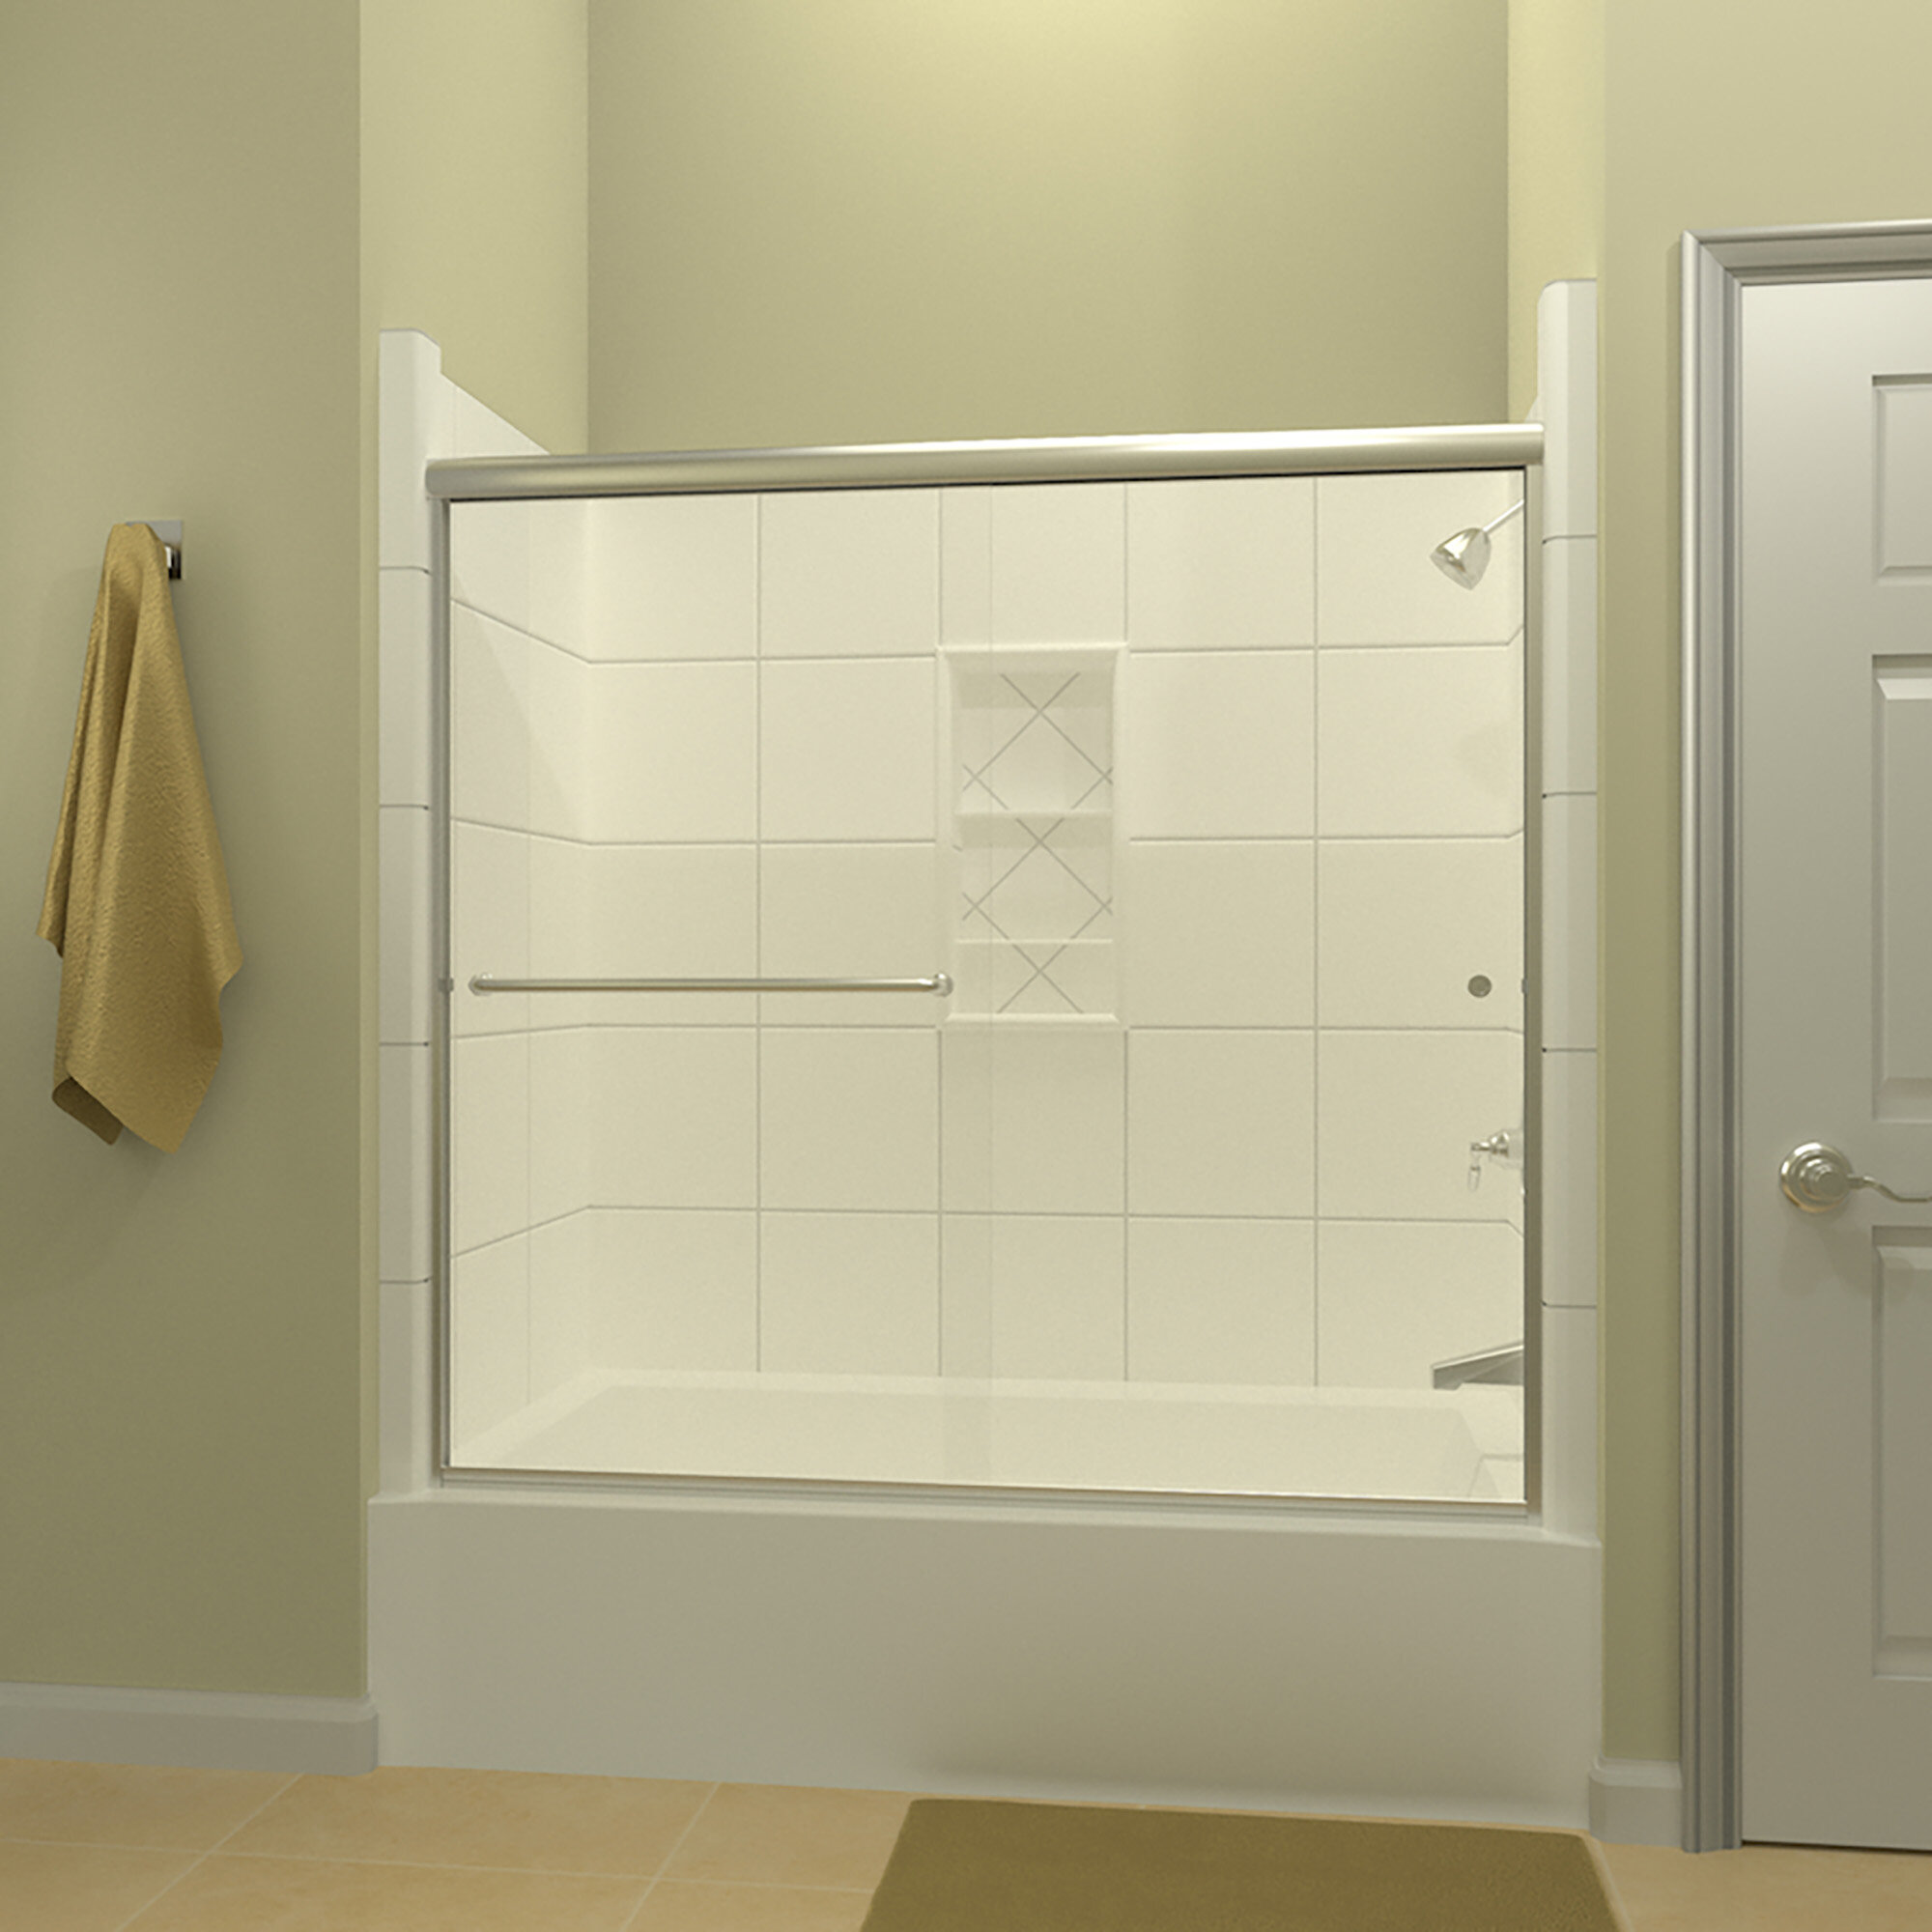 Details About Ete 72 X 57 38 Bypass Semi Frameless Tub Door Left Opening Brushed Nickel